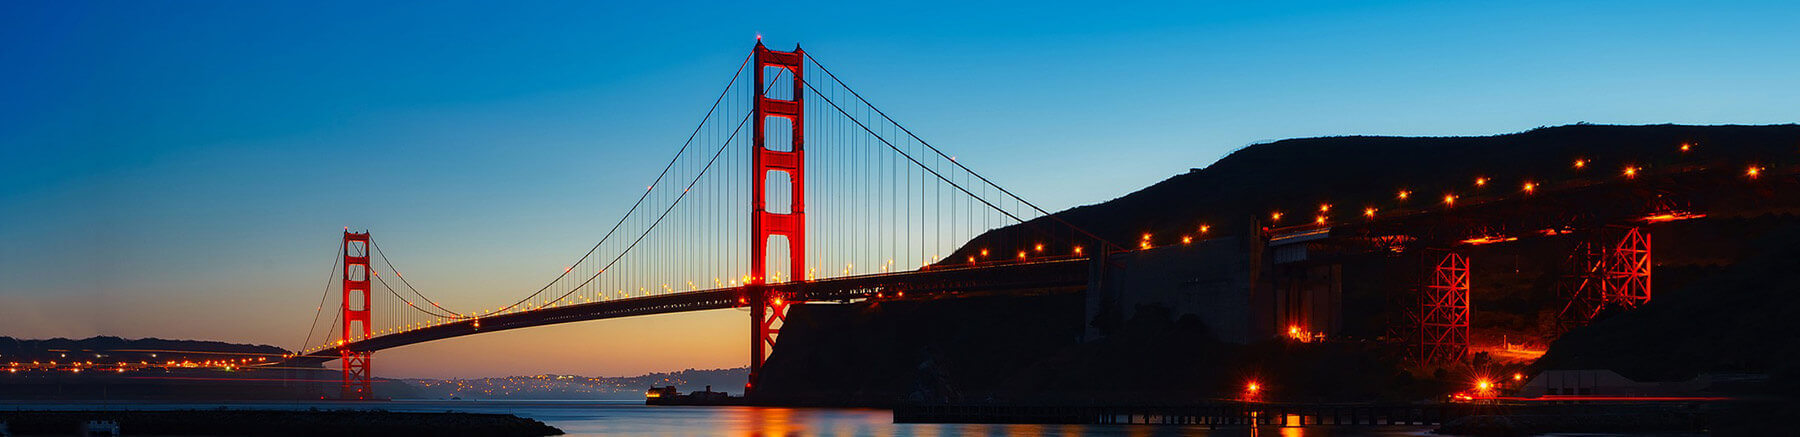 Beautiful view of the Golden Gate bridge in San Francisco, California